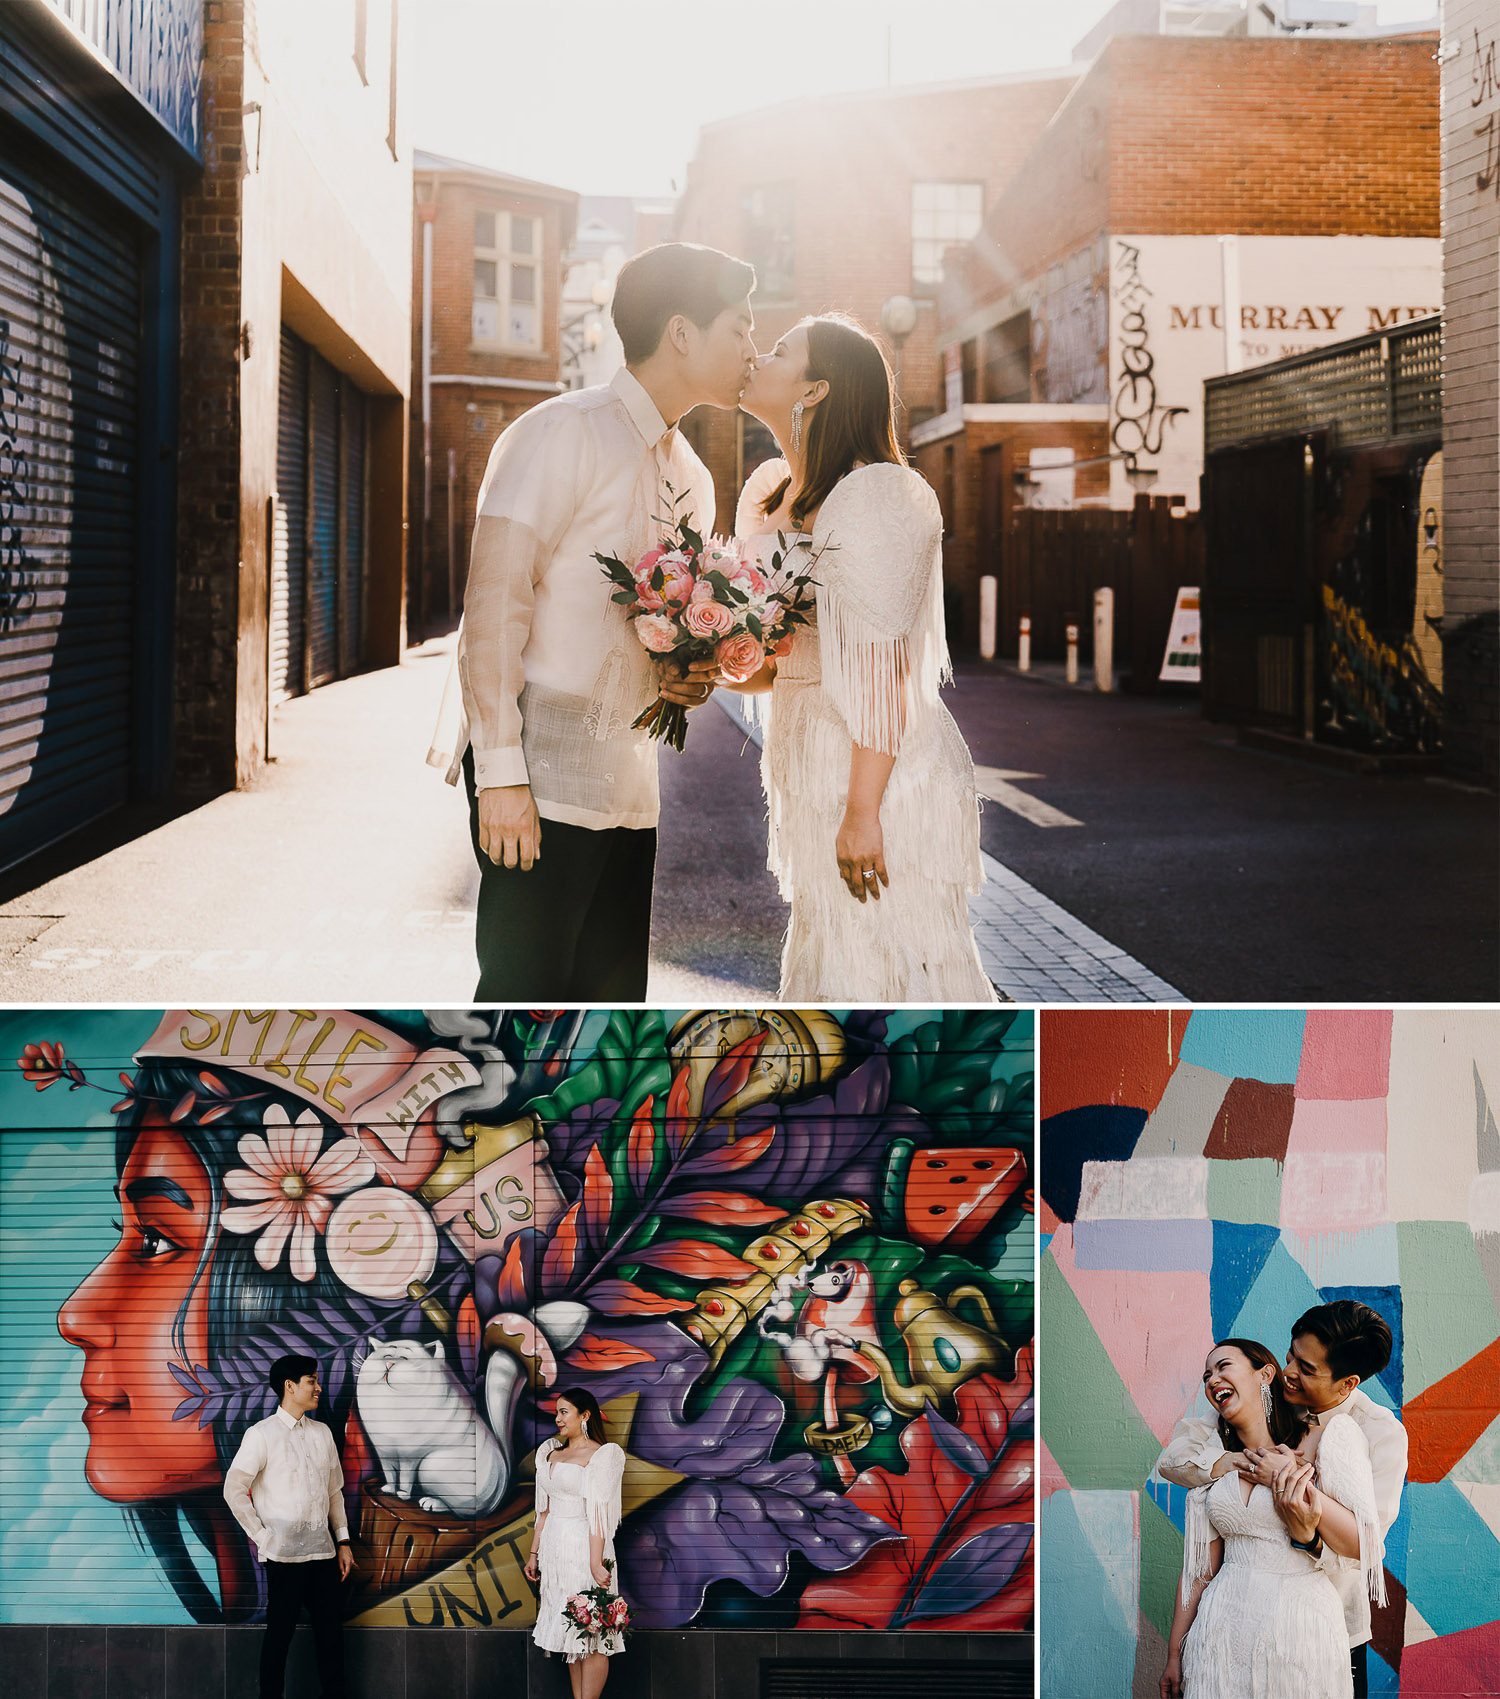 Couple prewed and engagement shoot in Perth city streets, photoshoot in front of graffiti wall, casual photoshoot in perth city